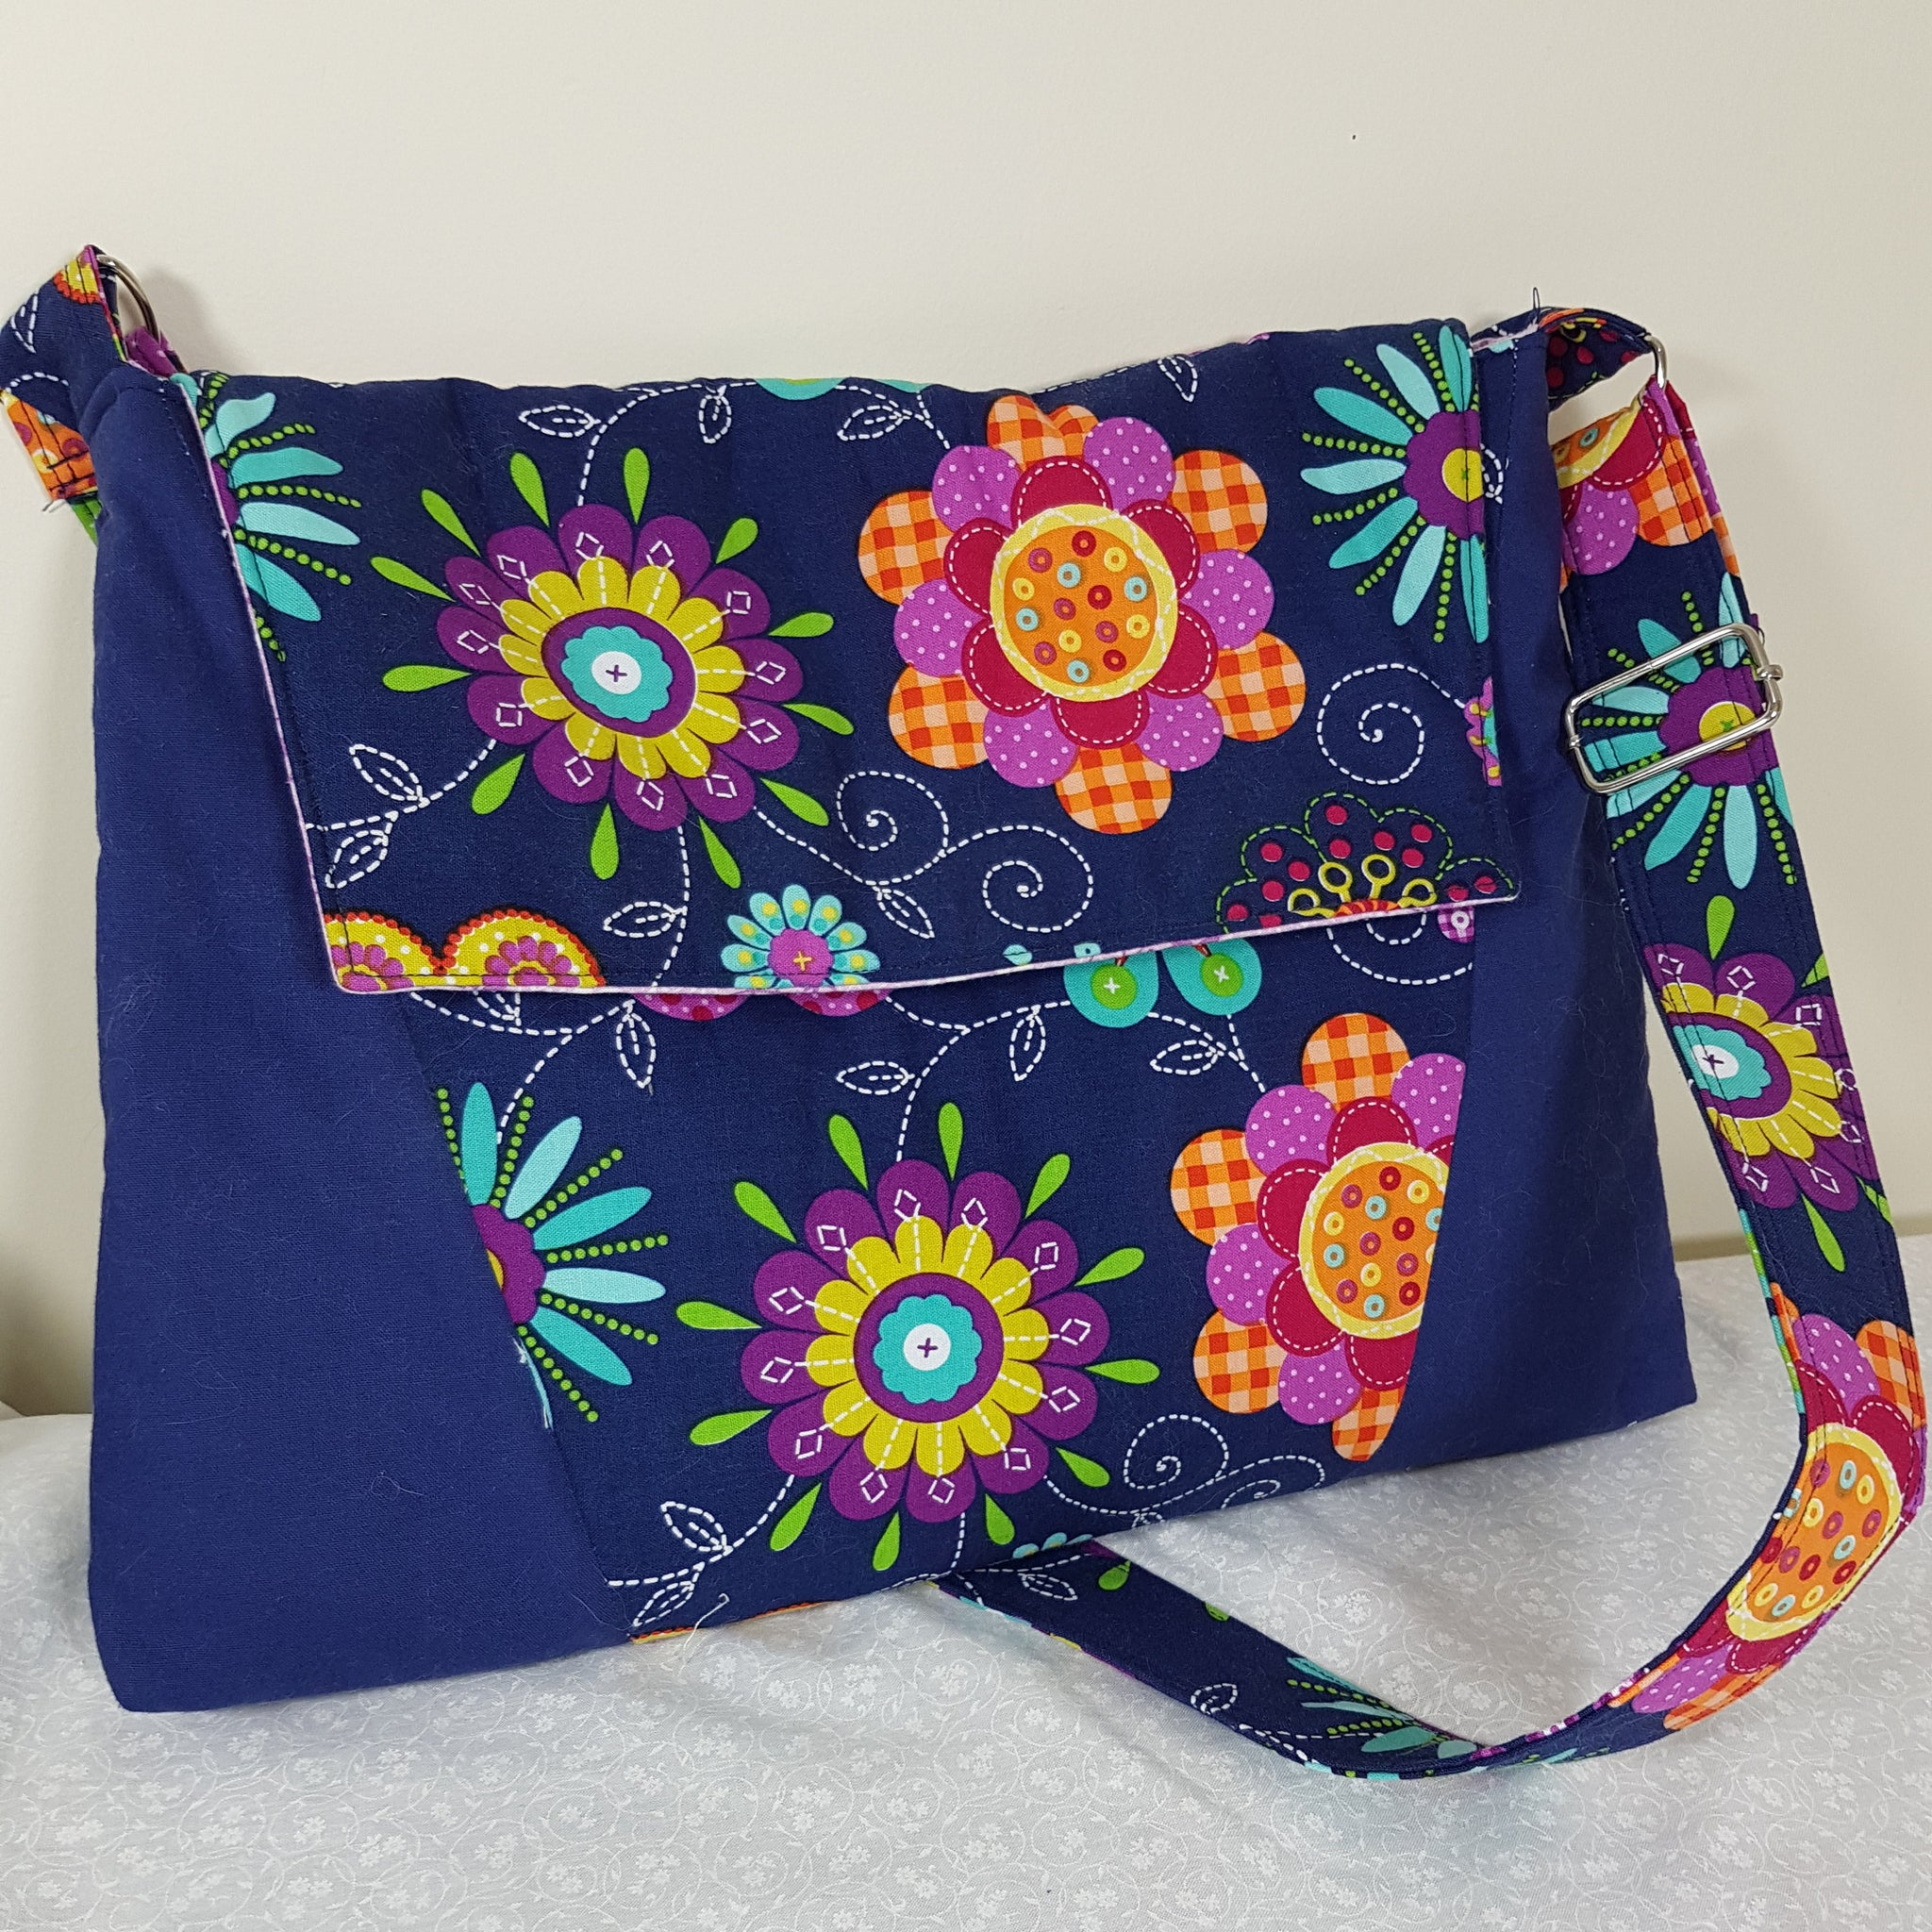 Luna Laptop Bag & Handbag PDF Sewing Pattern  PDF Pattern free sewing patterns - Lorelei Jayne